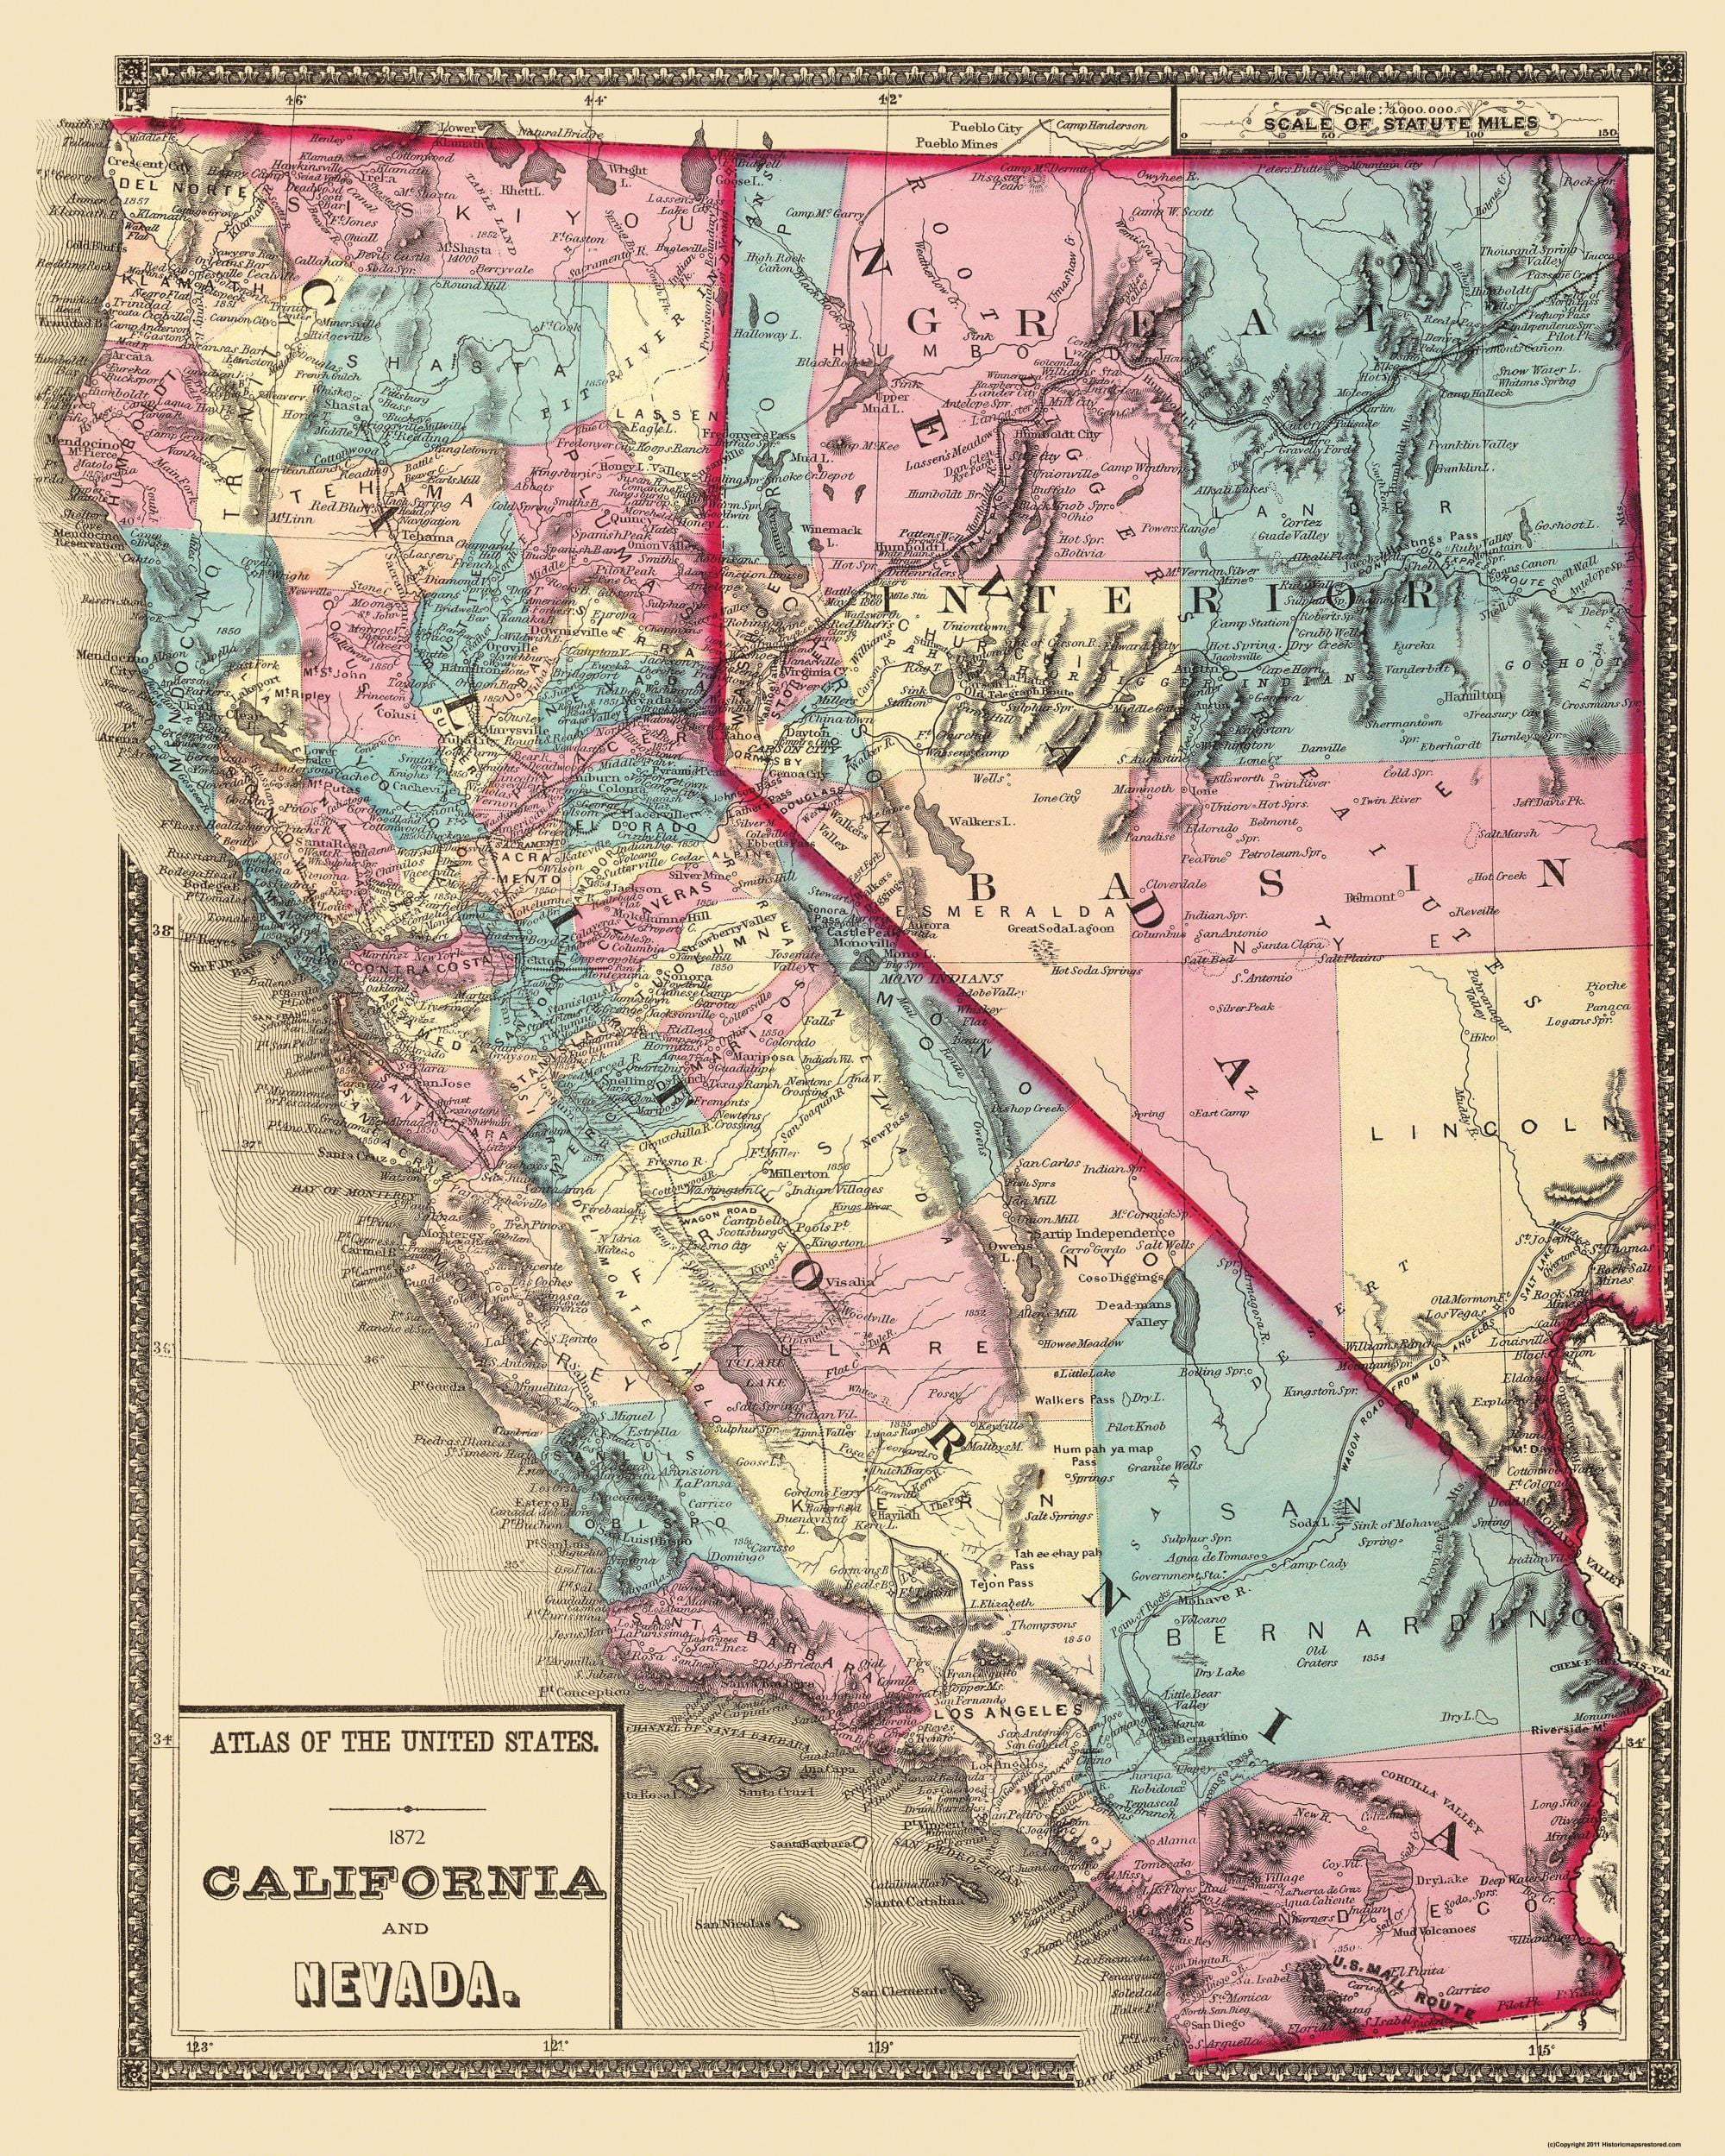 Map Of Nevada And California Old State Map   California, Nevada   1872   23 x 28.75   Walmart.com